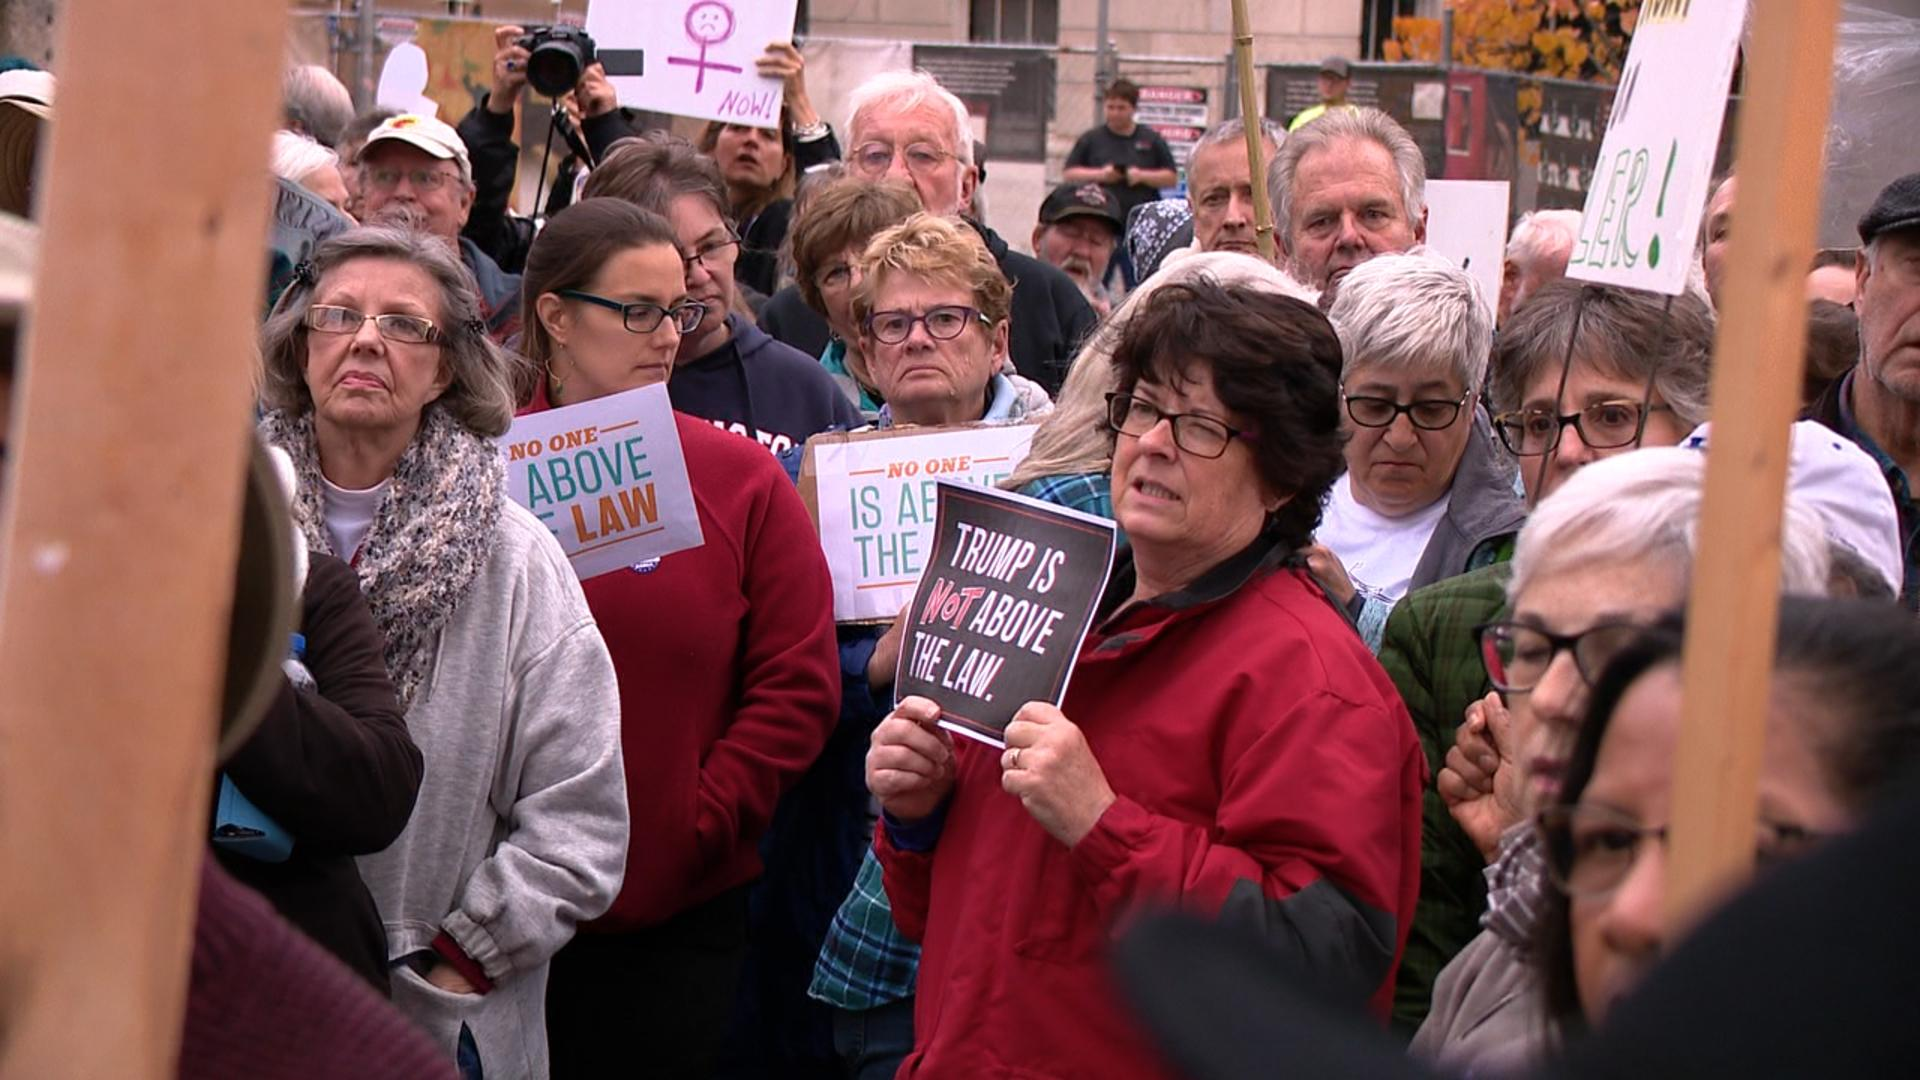 Activists rallied at Vance Monument in downtown Asheville over fears President Trump is derailing Robert Mueller's Russia investigation. (Photo credit: WLOS staff)